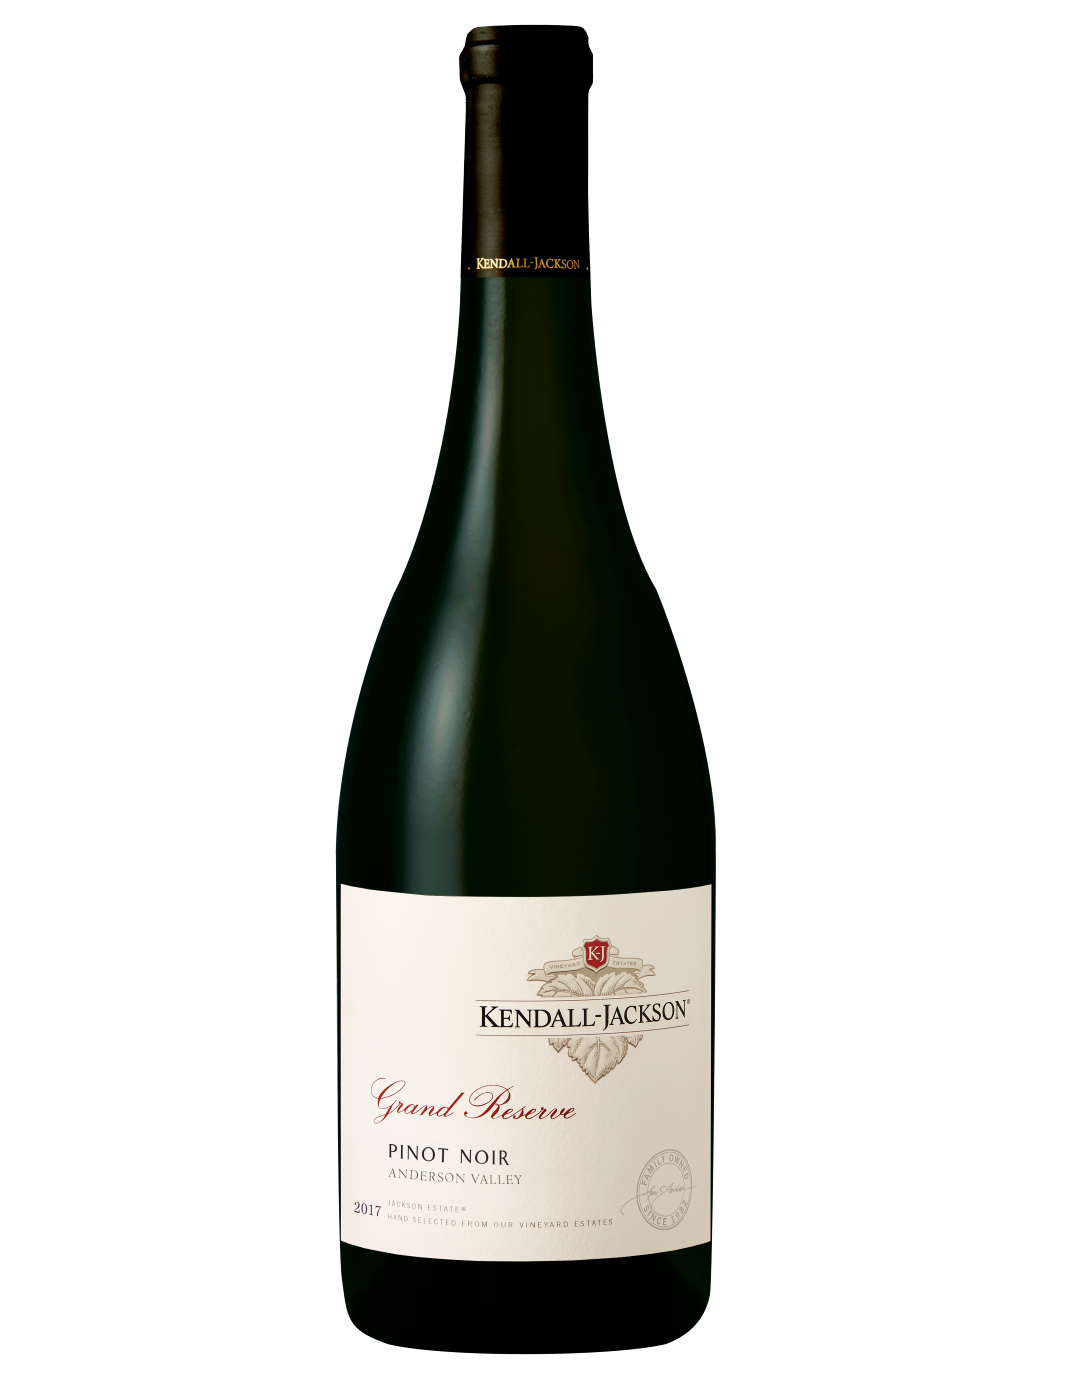 2017 Kendall-Jackson Pinot Noir Grand Reserve Anderson Valley